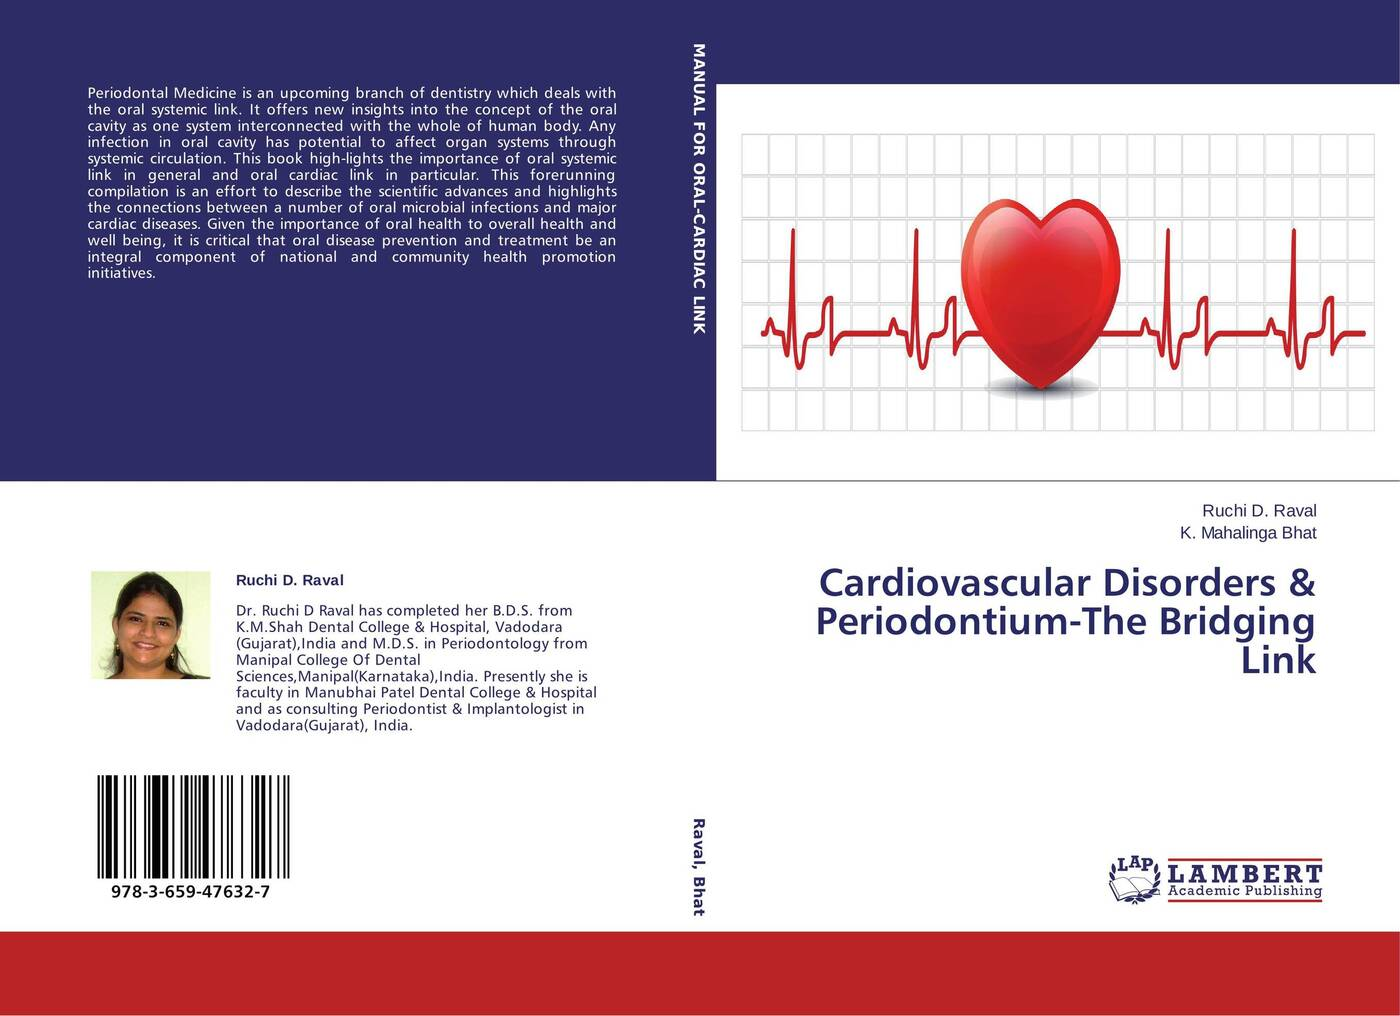 Ruchi D. Raval and K. Mahalinga Bhat Cardiovascular Disorders & Periodontium-The Bridging Link цена в Москве и Питере